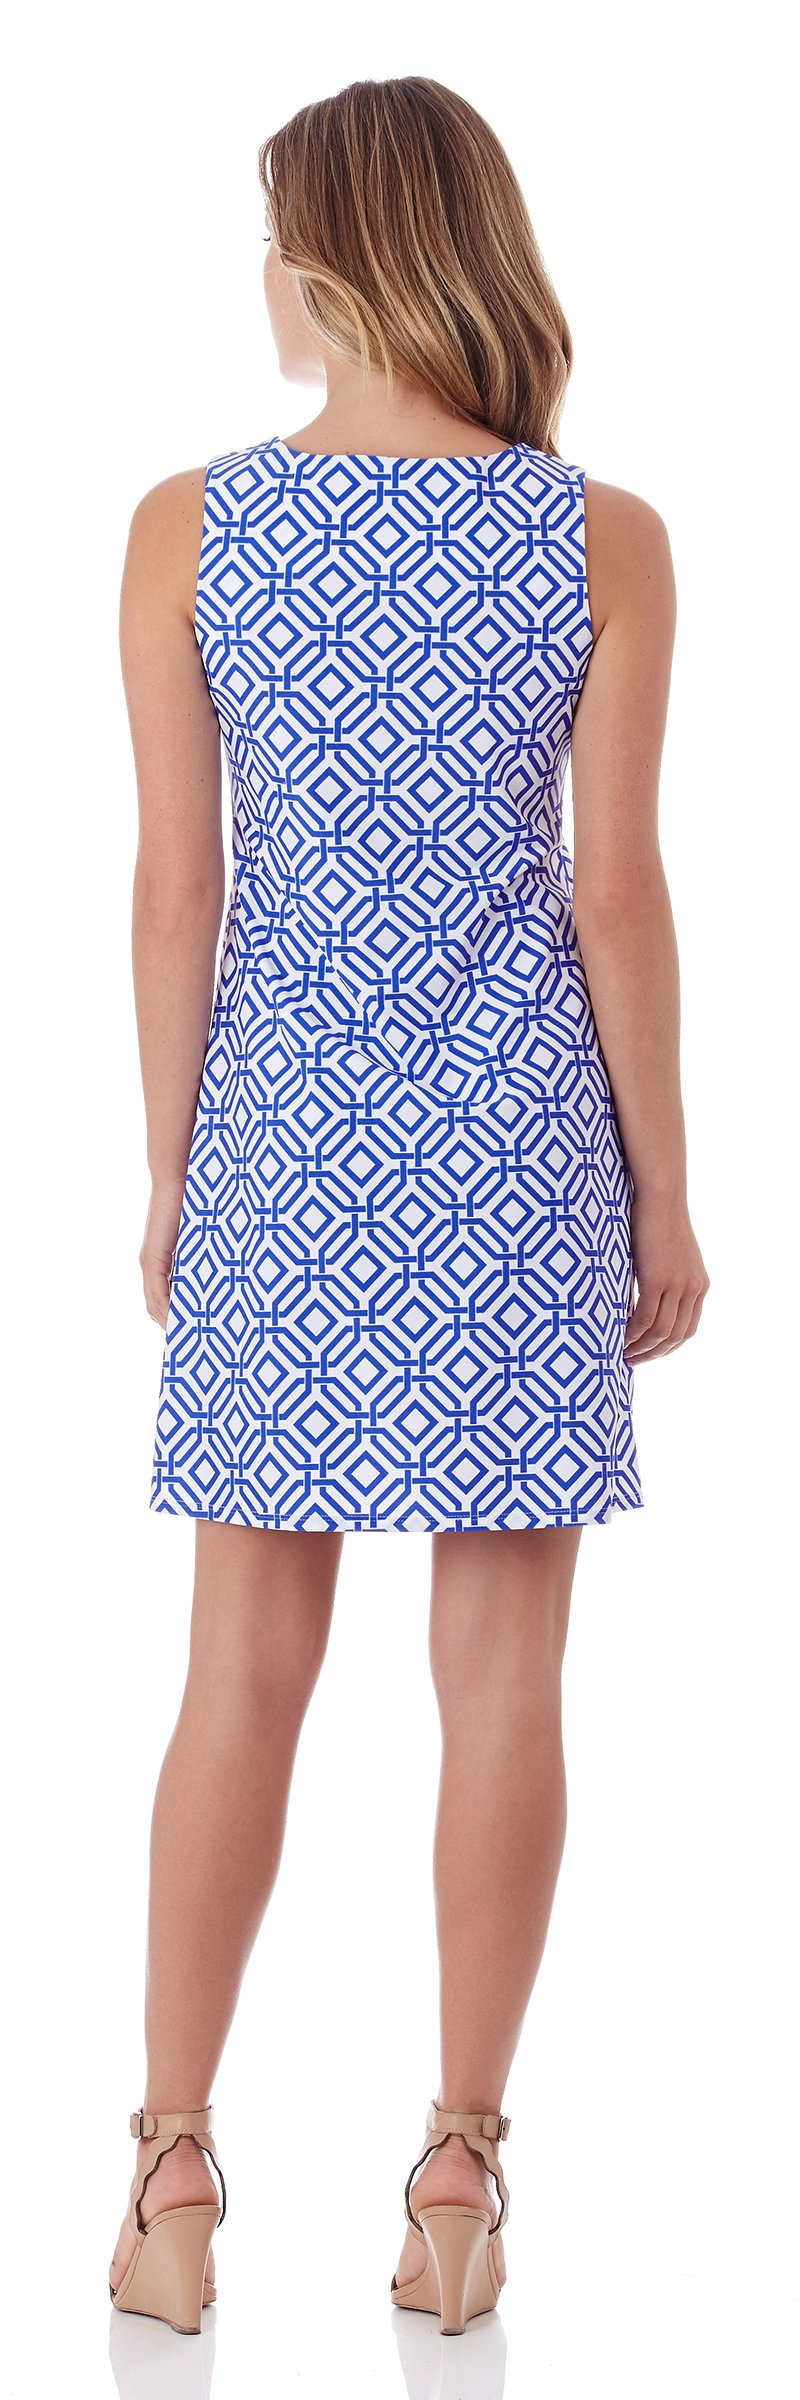 Jude Connally Beth Dress In Grand Links White Sapphire